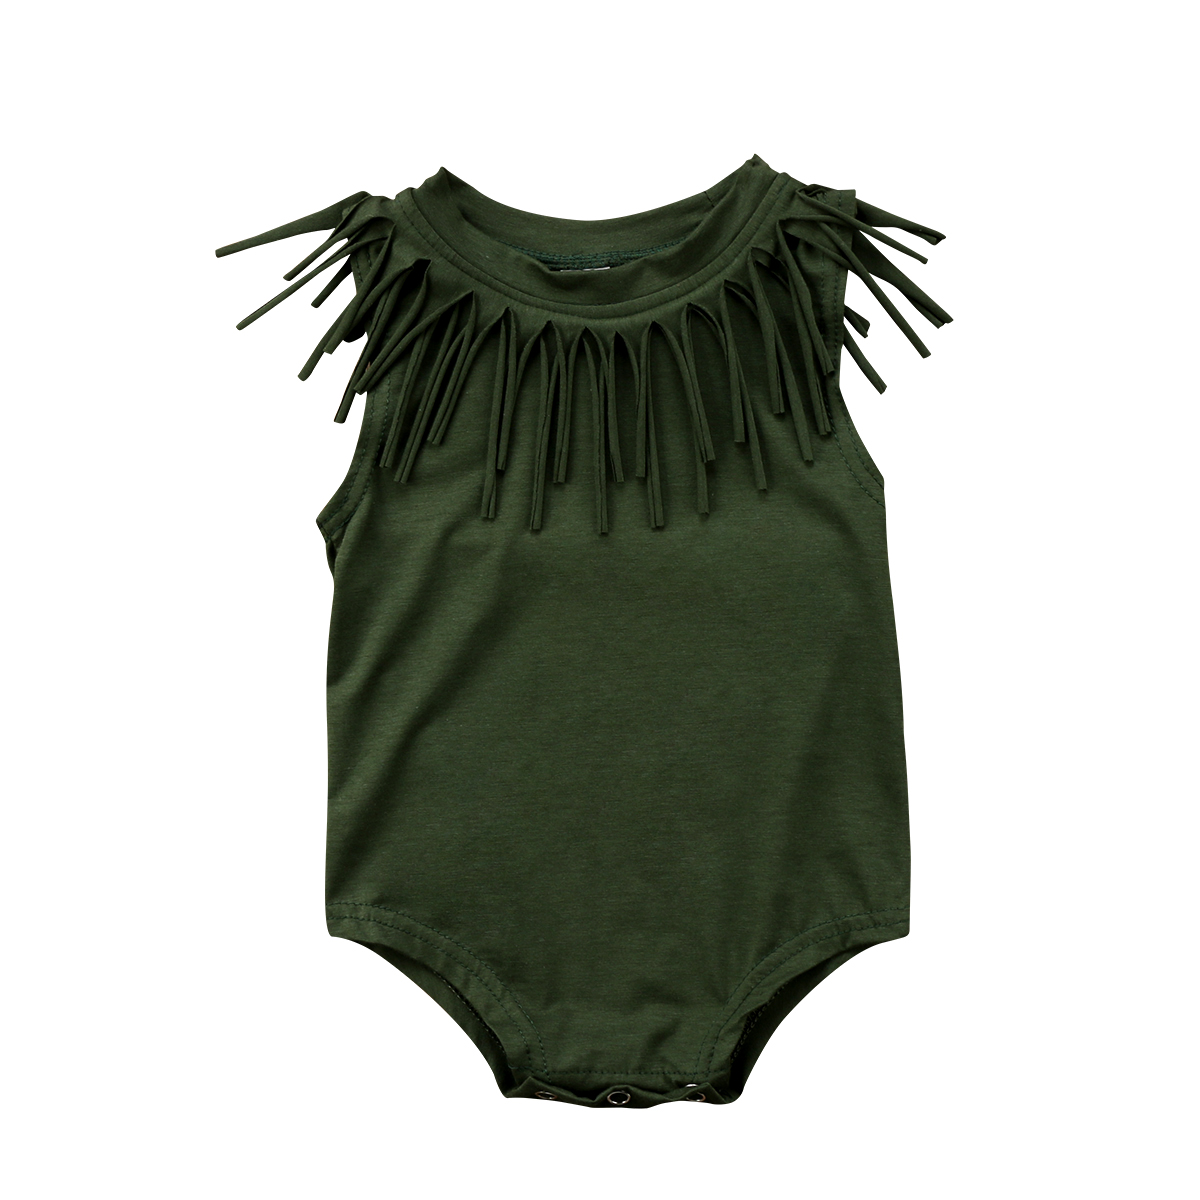 Baby Girls Clothes Toddler kid girls Vintage Tassel   Romper   Black/Army Green Jumpsuit Cotton Outfits Summer Baby Girls Clothing